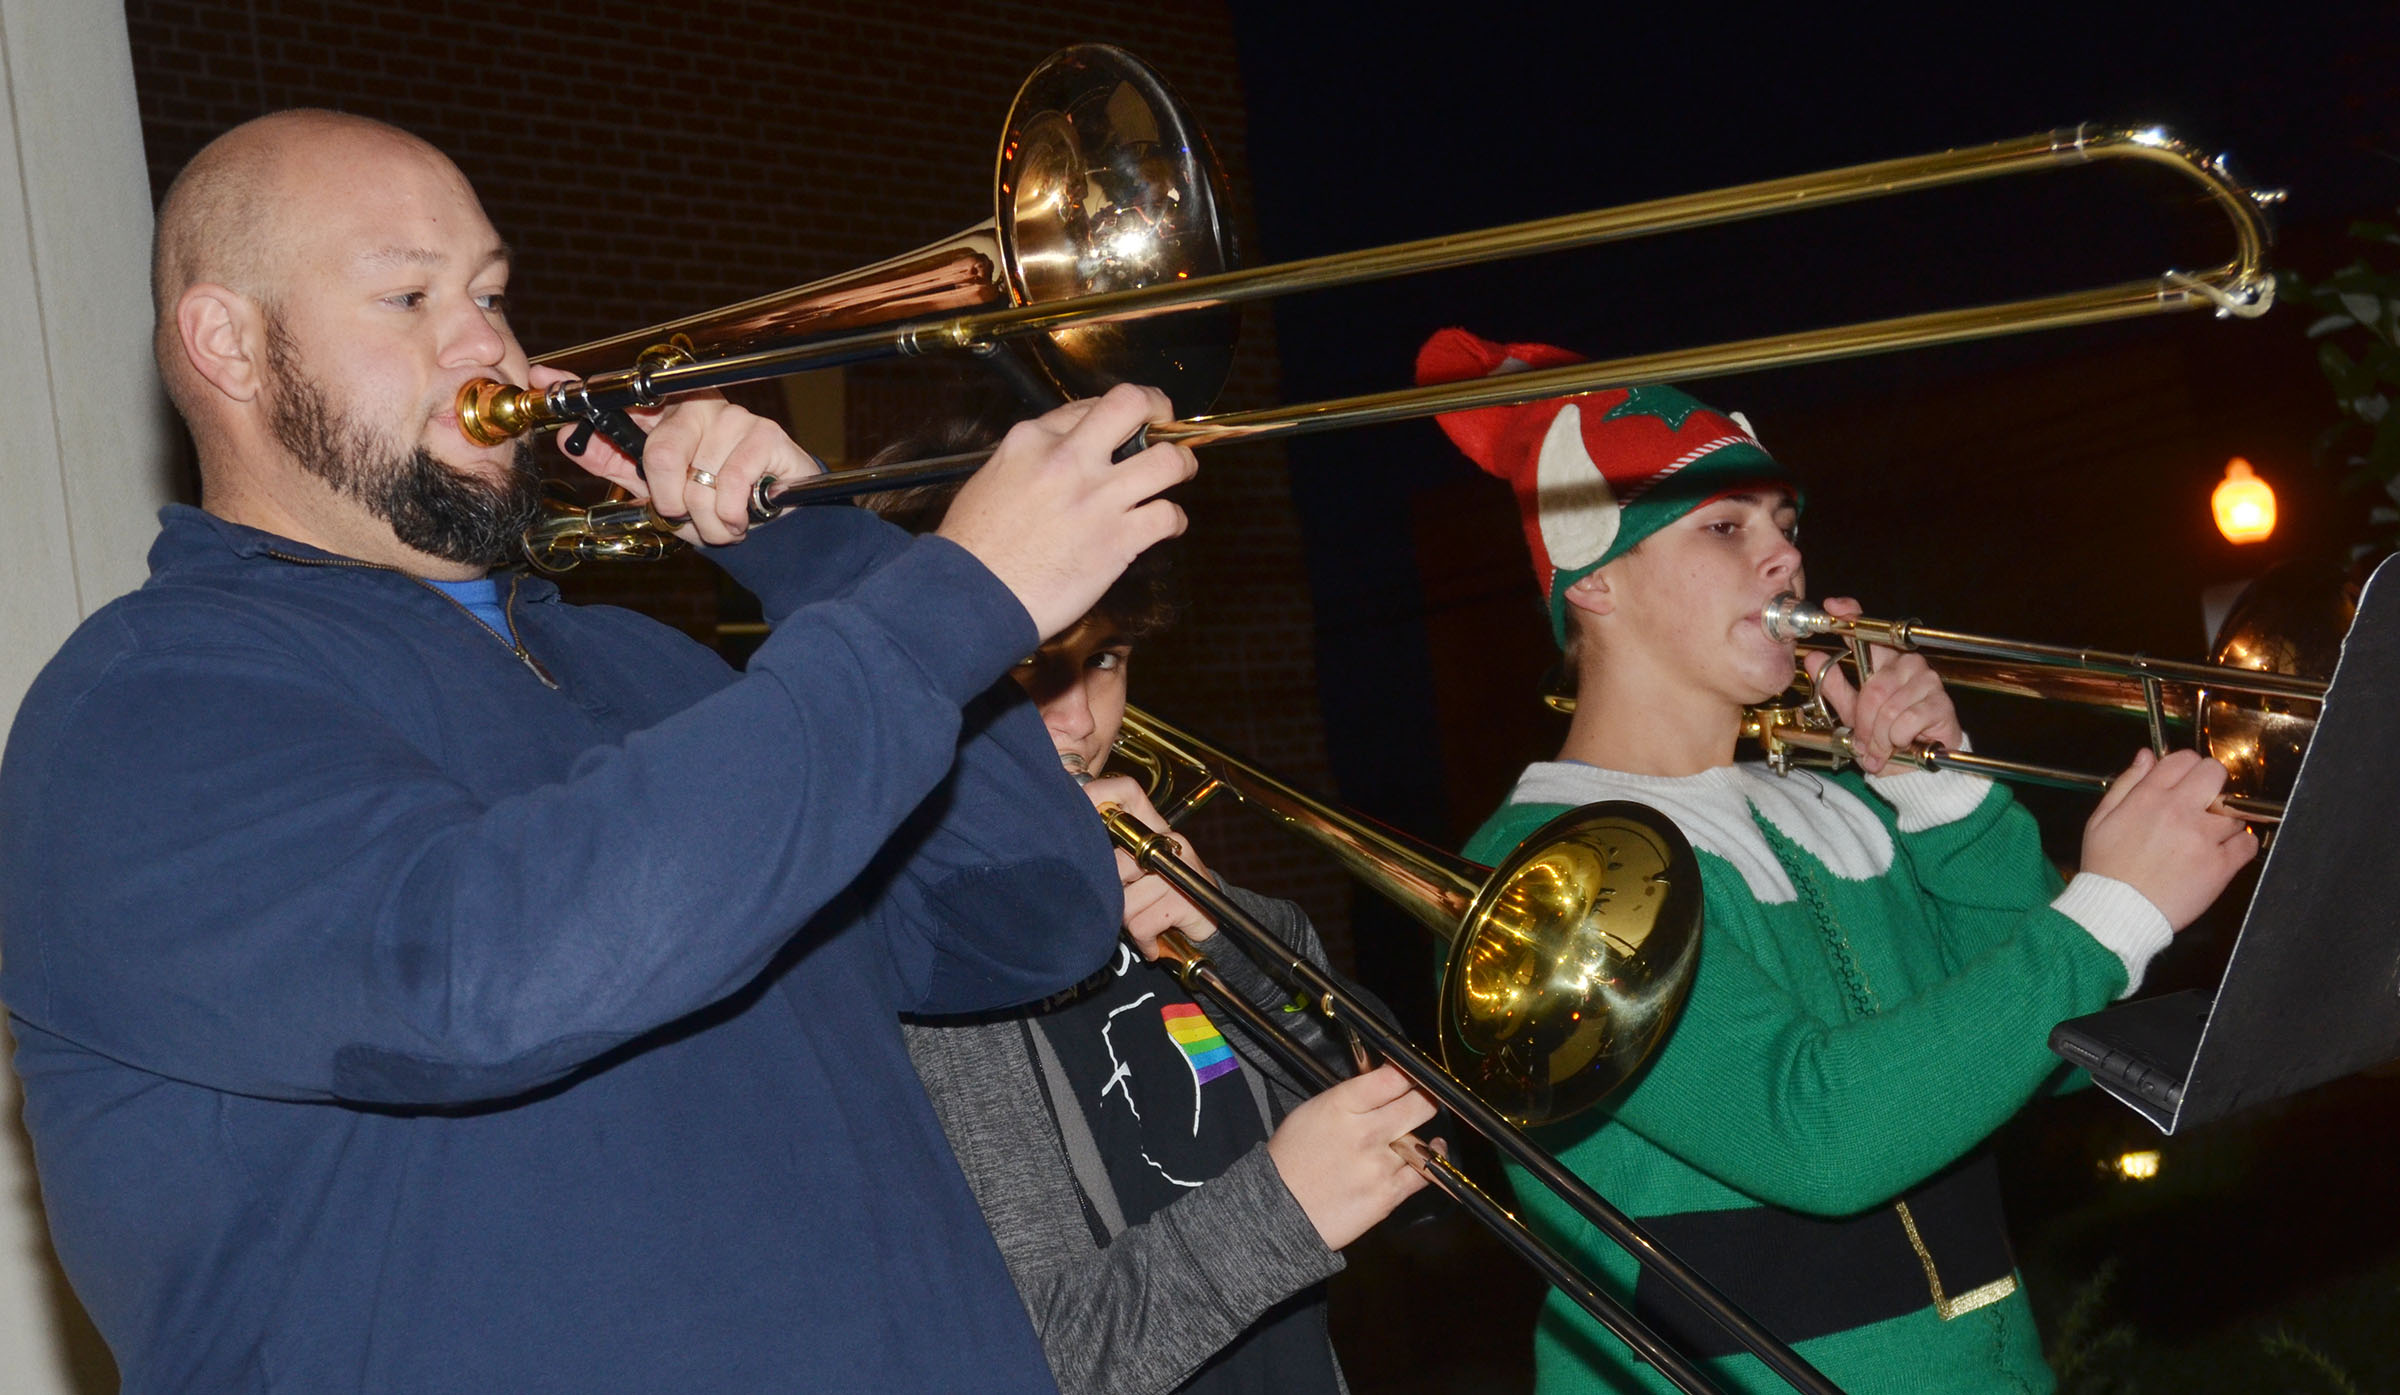 CHS Band Director Zach Shelton plays trombone.